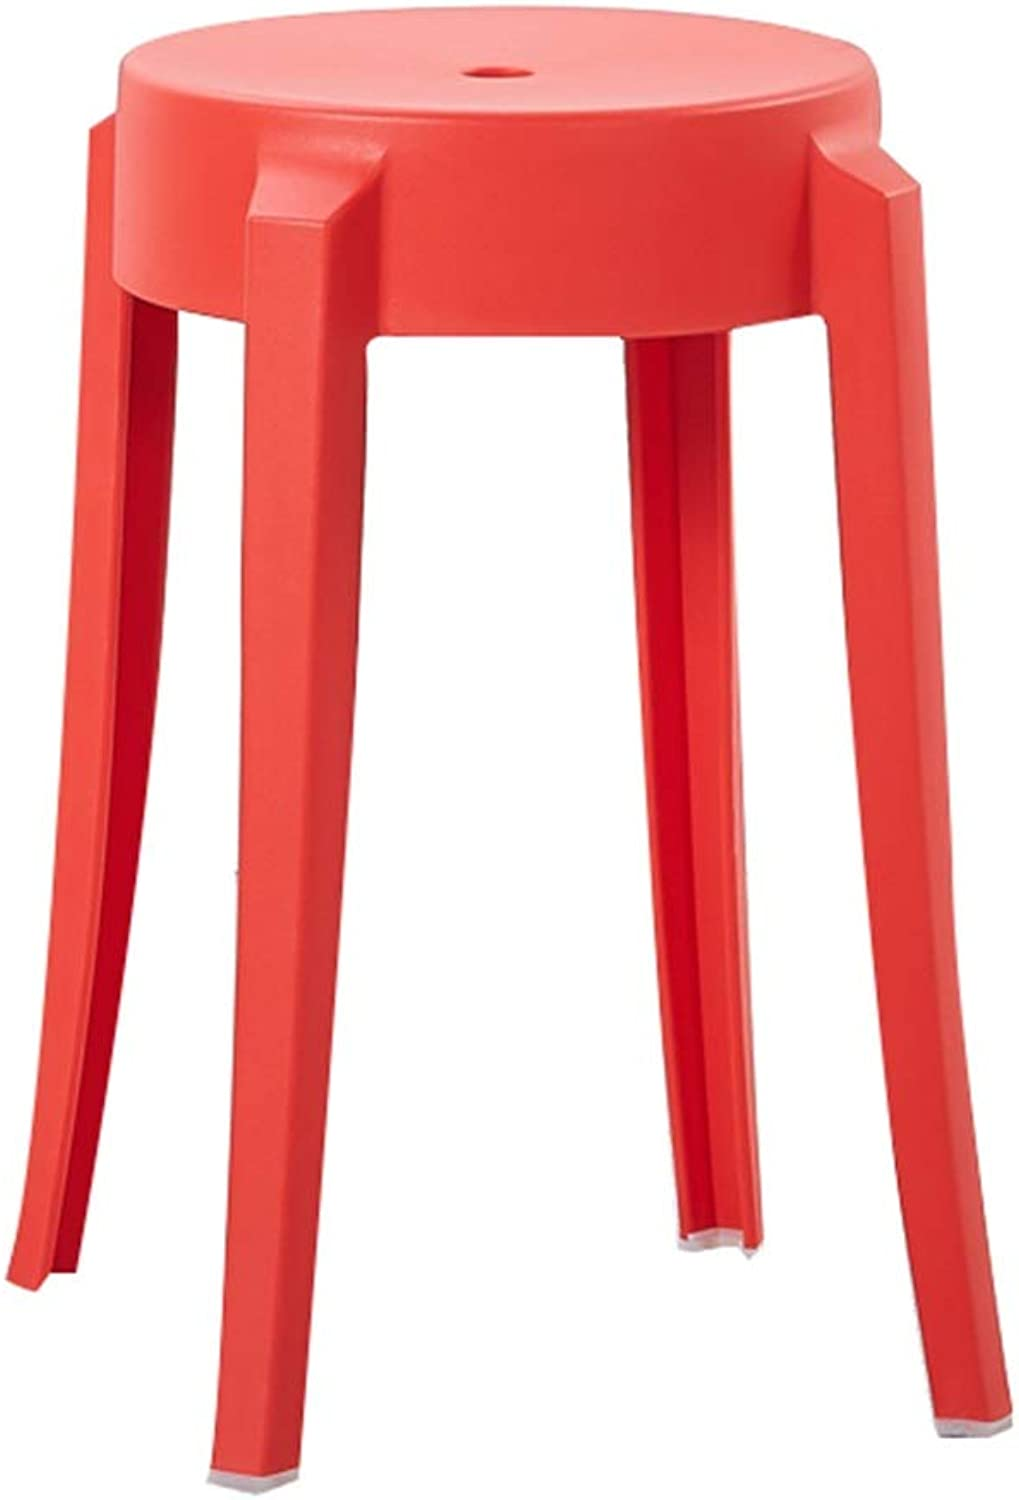 AGL-Bathroom Stools 2-Piece Set Stool Bathroom Multipurpose Plastic High Waterproof Strong Bearing Capacity Anti-Slip Portable Fashion Living Room Change shoes Bench (color   Red, Size   26X45CM)